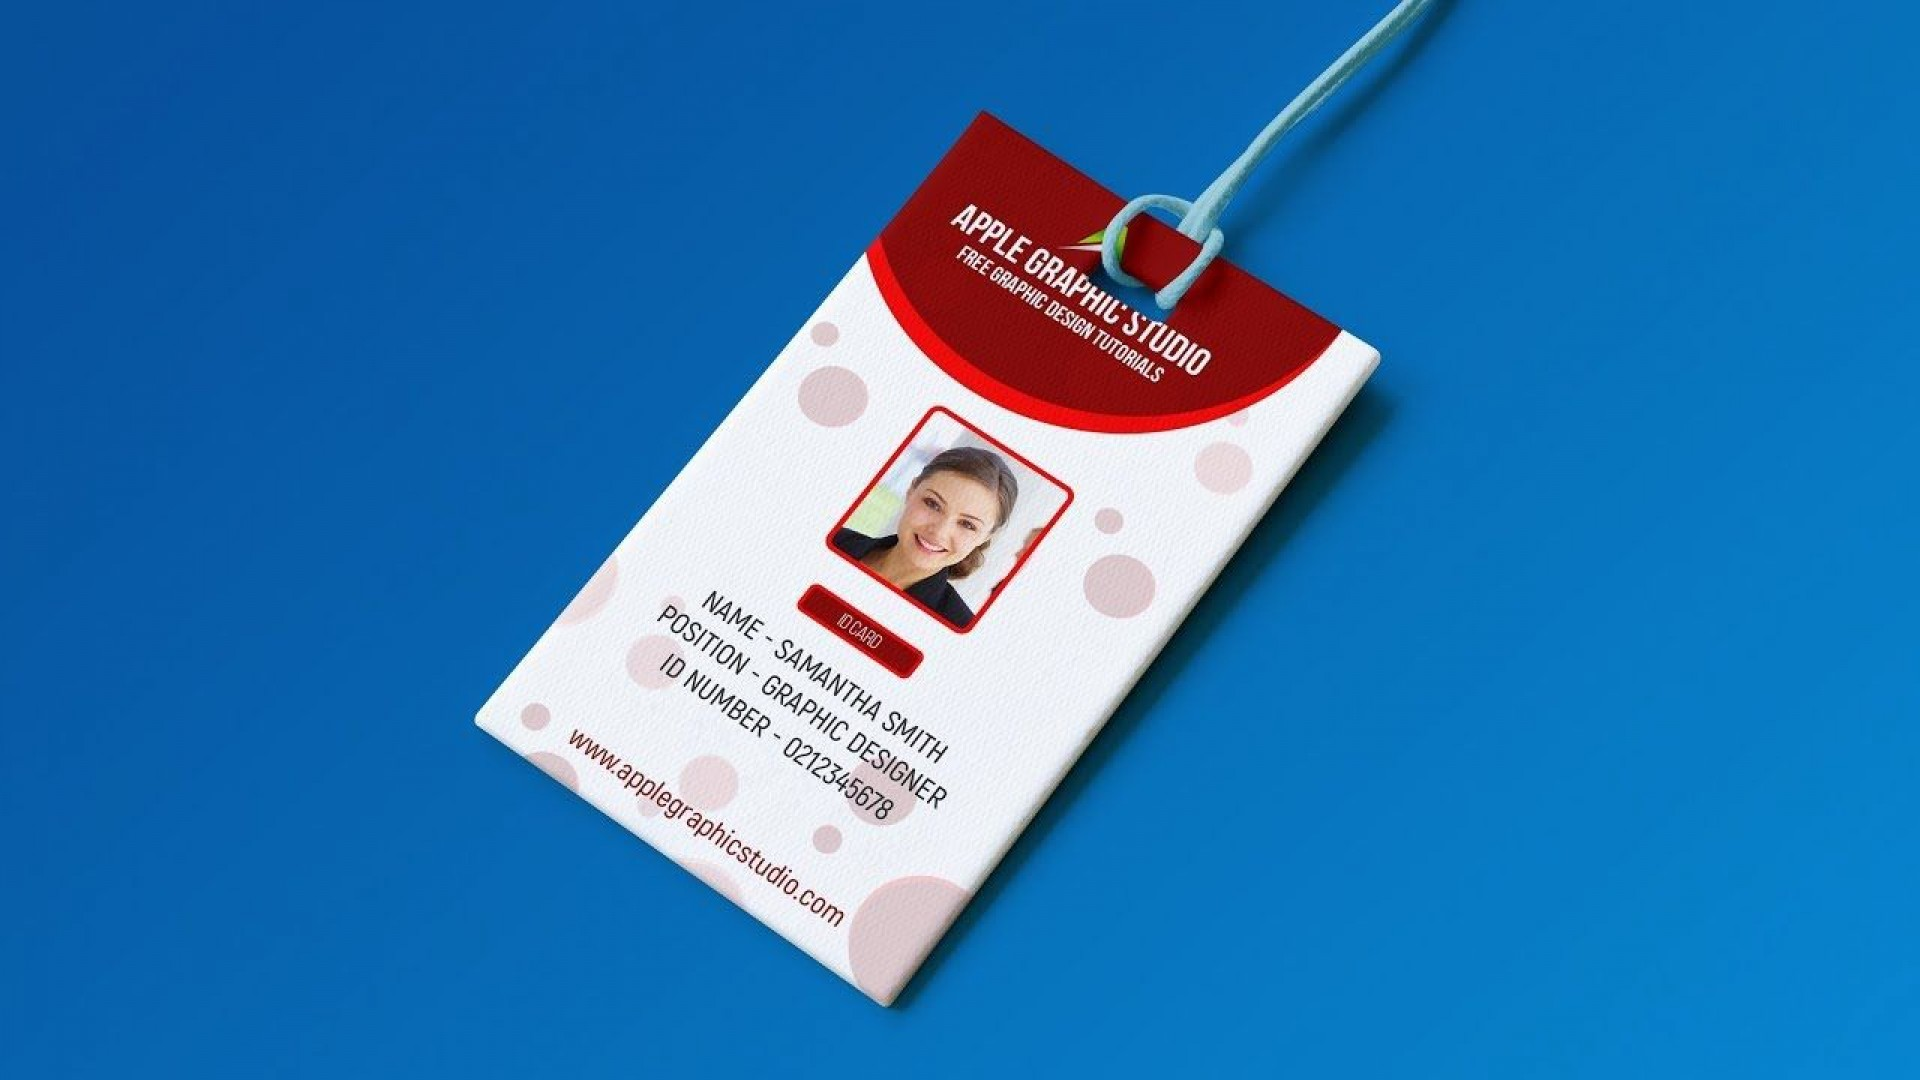 003 Amazing Id Badge Template Photoshop Photo  Employee1920